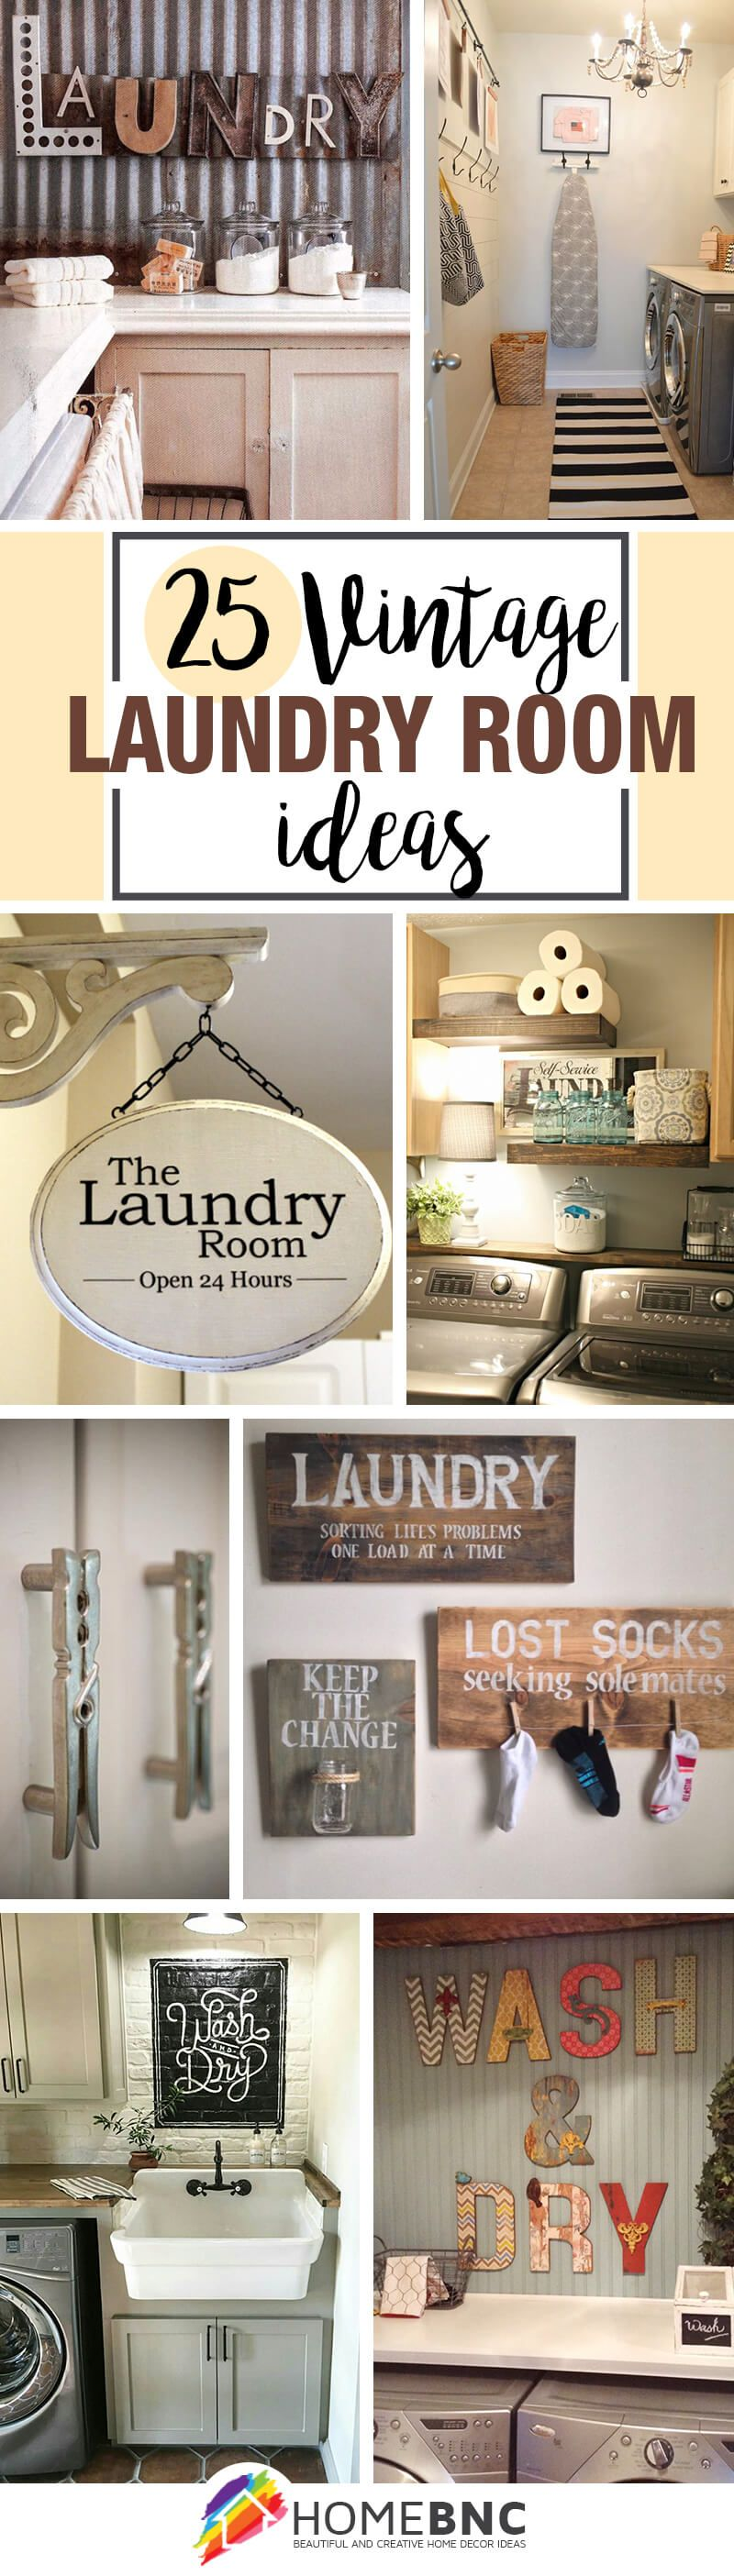 vintage laundry room decor designs | home (ideas & decor) in 2019